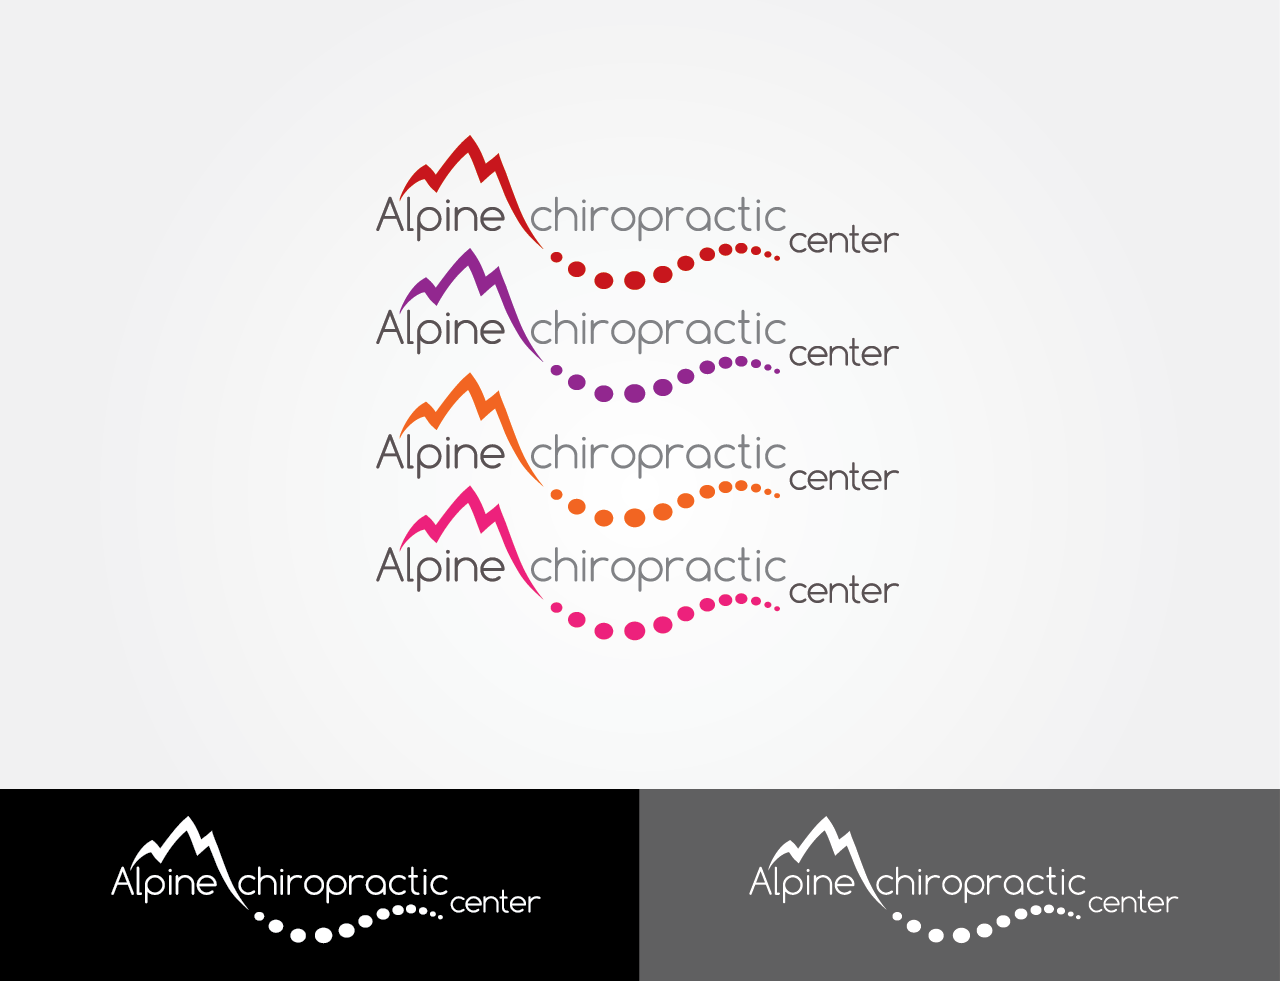 Help Alpine Chiropractic Center with a new logo